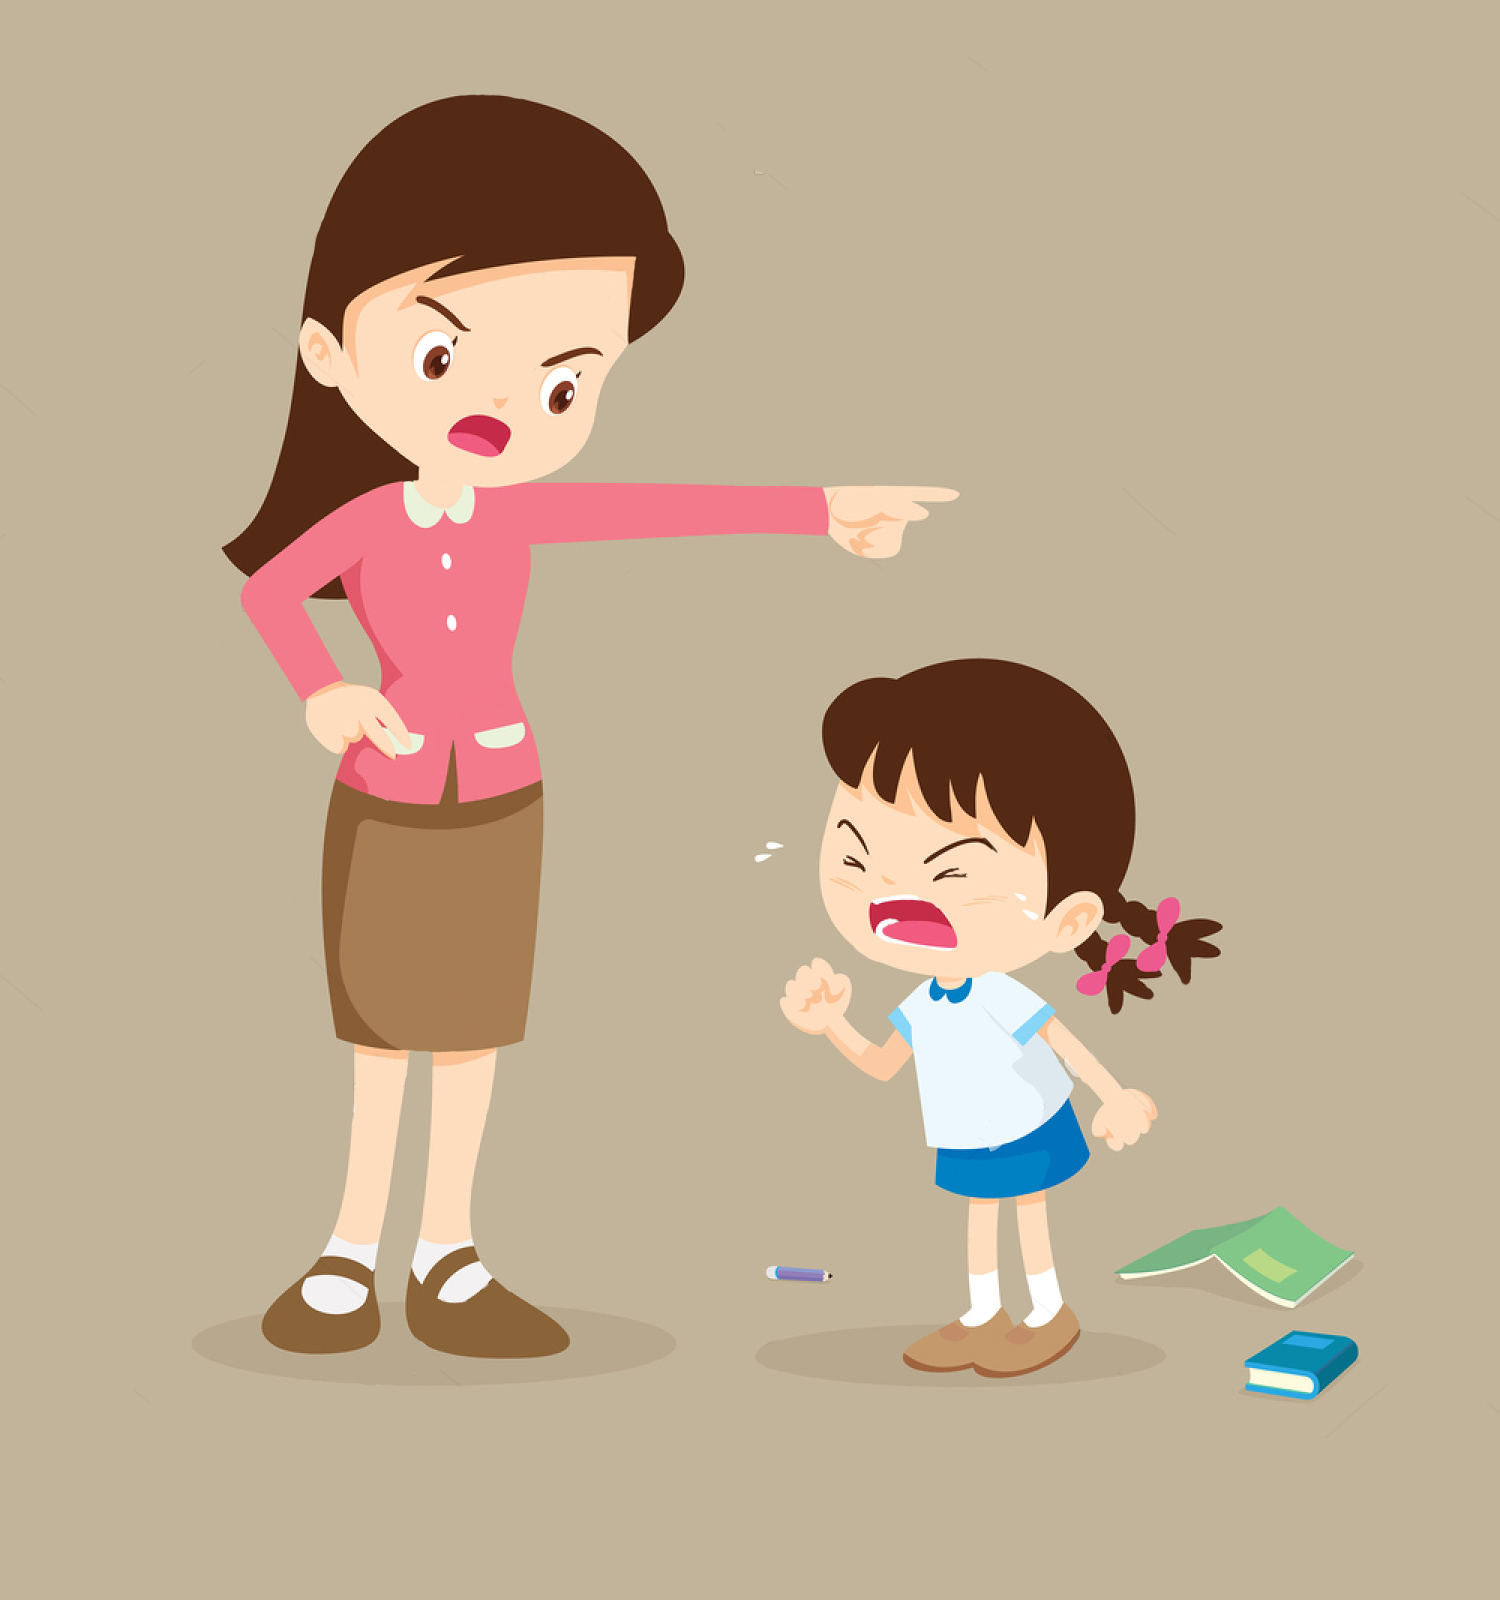 Respect clipart teacher student relationship. Idle and xtraordinary life